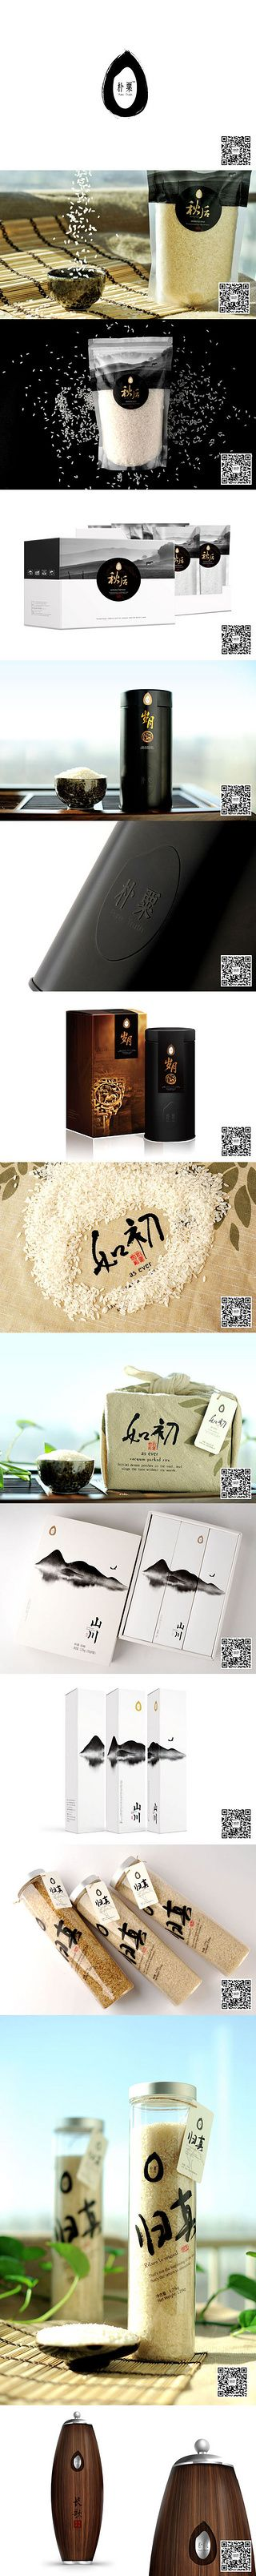 Beautiful rice packaging collection PD // Repinned by www.lunik2.com